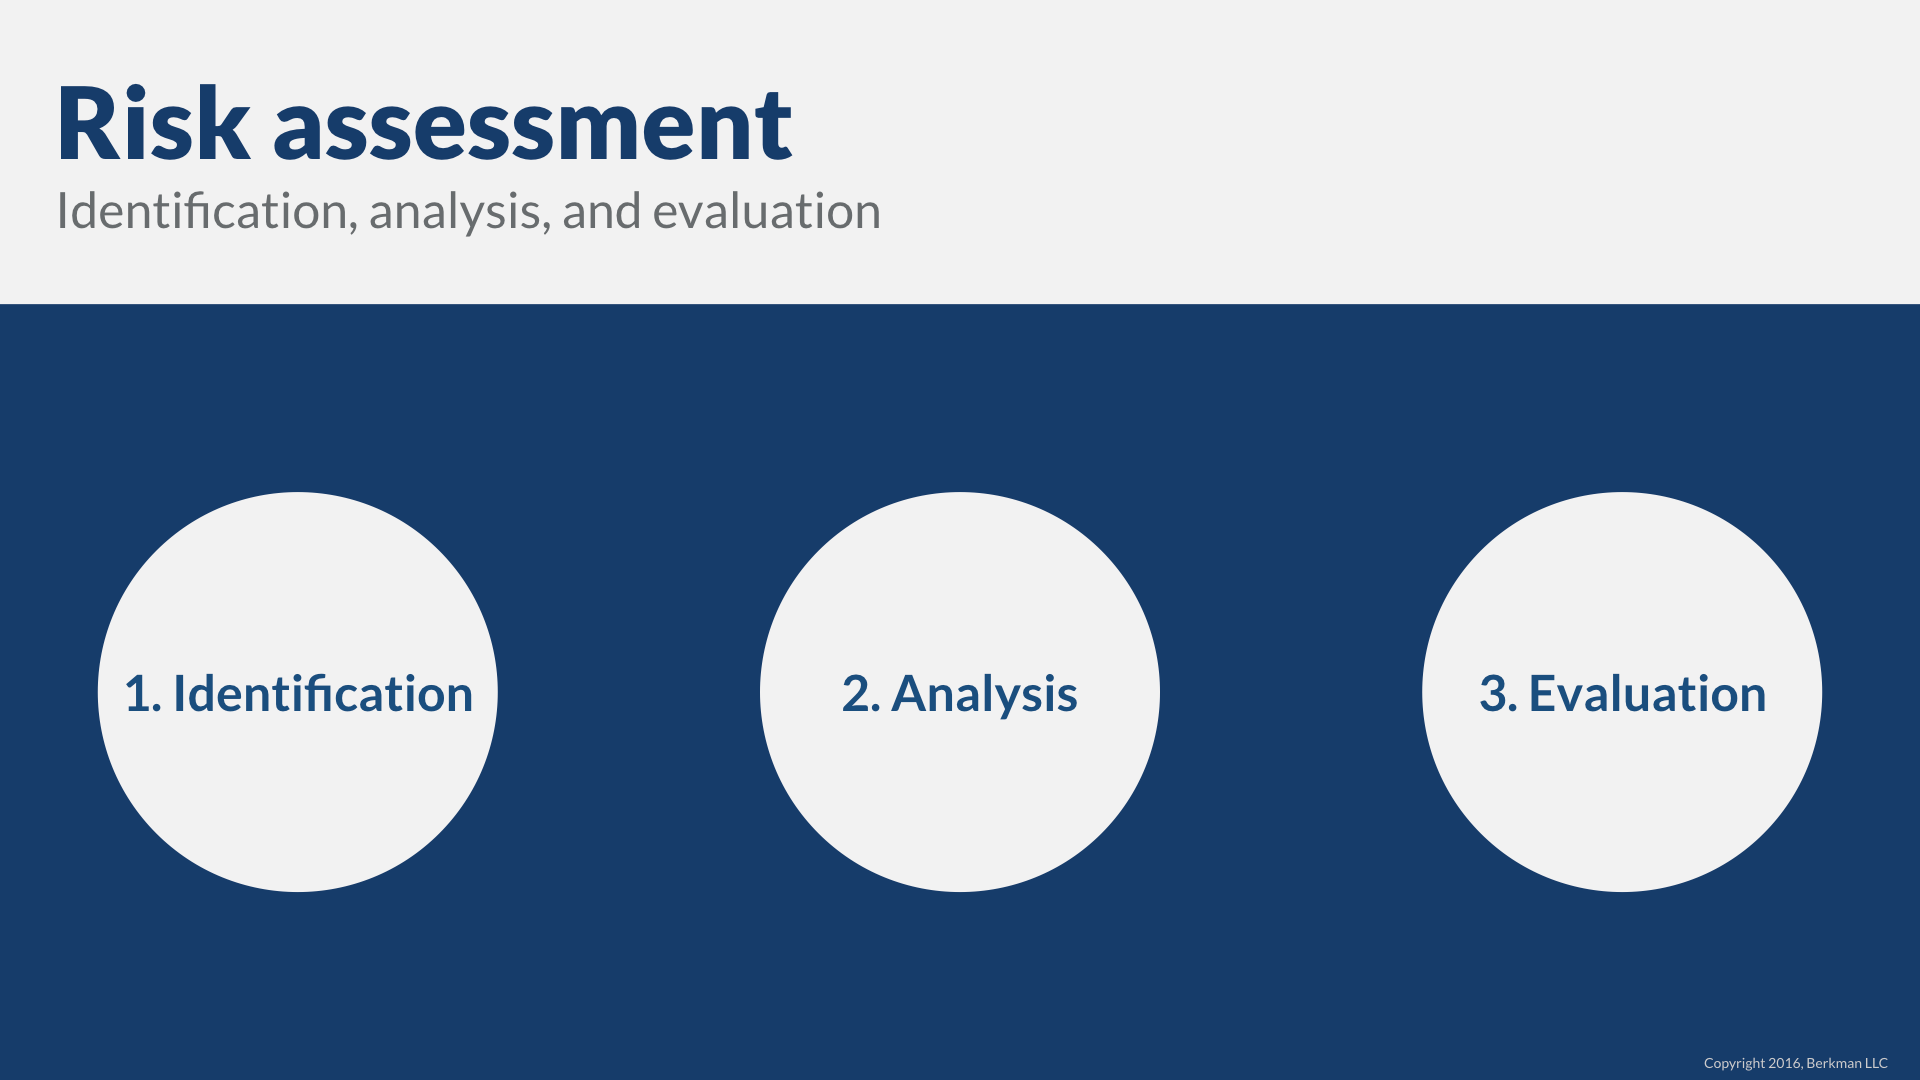 Risk Assessment Steps: Identification, Analysis, and Evaluation